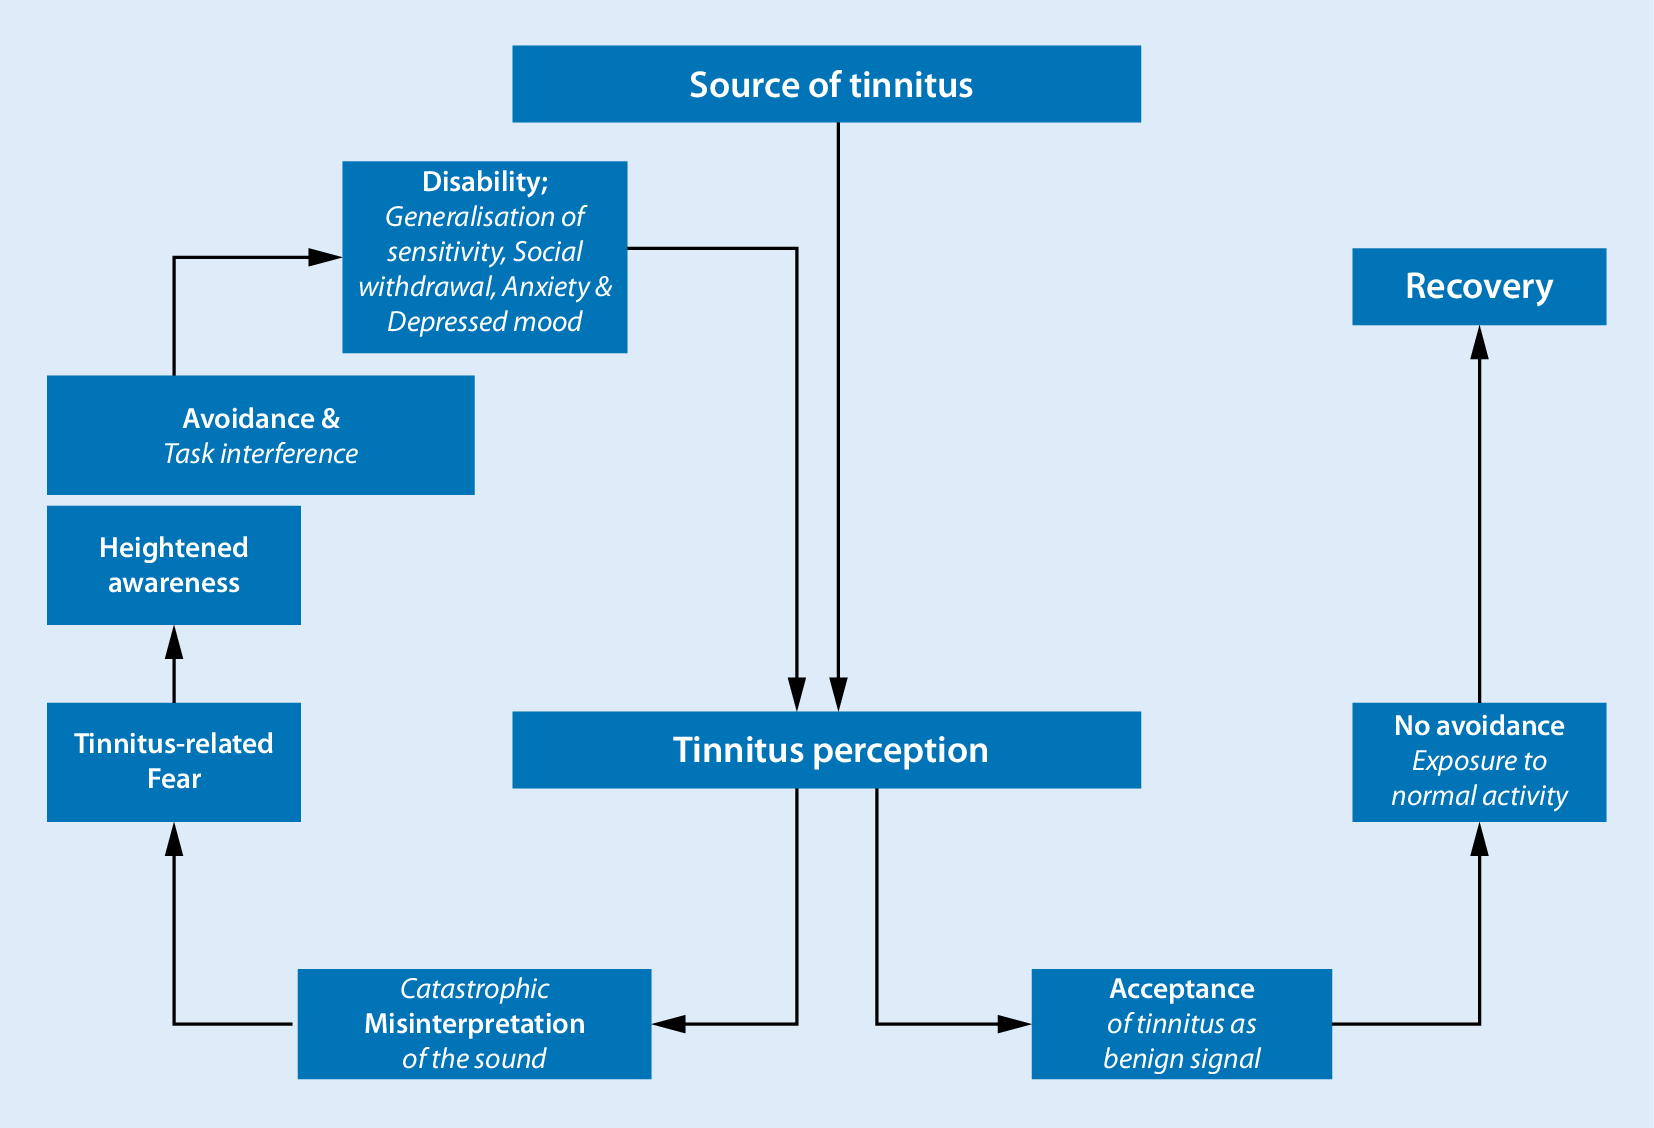 A multidisciplinary European guideline for tinnitus